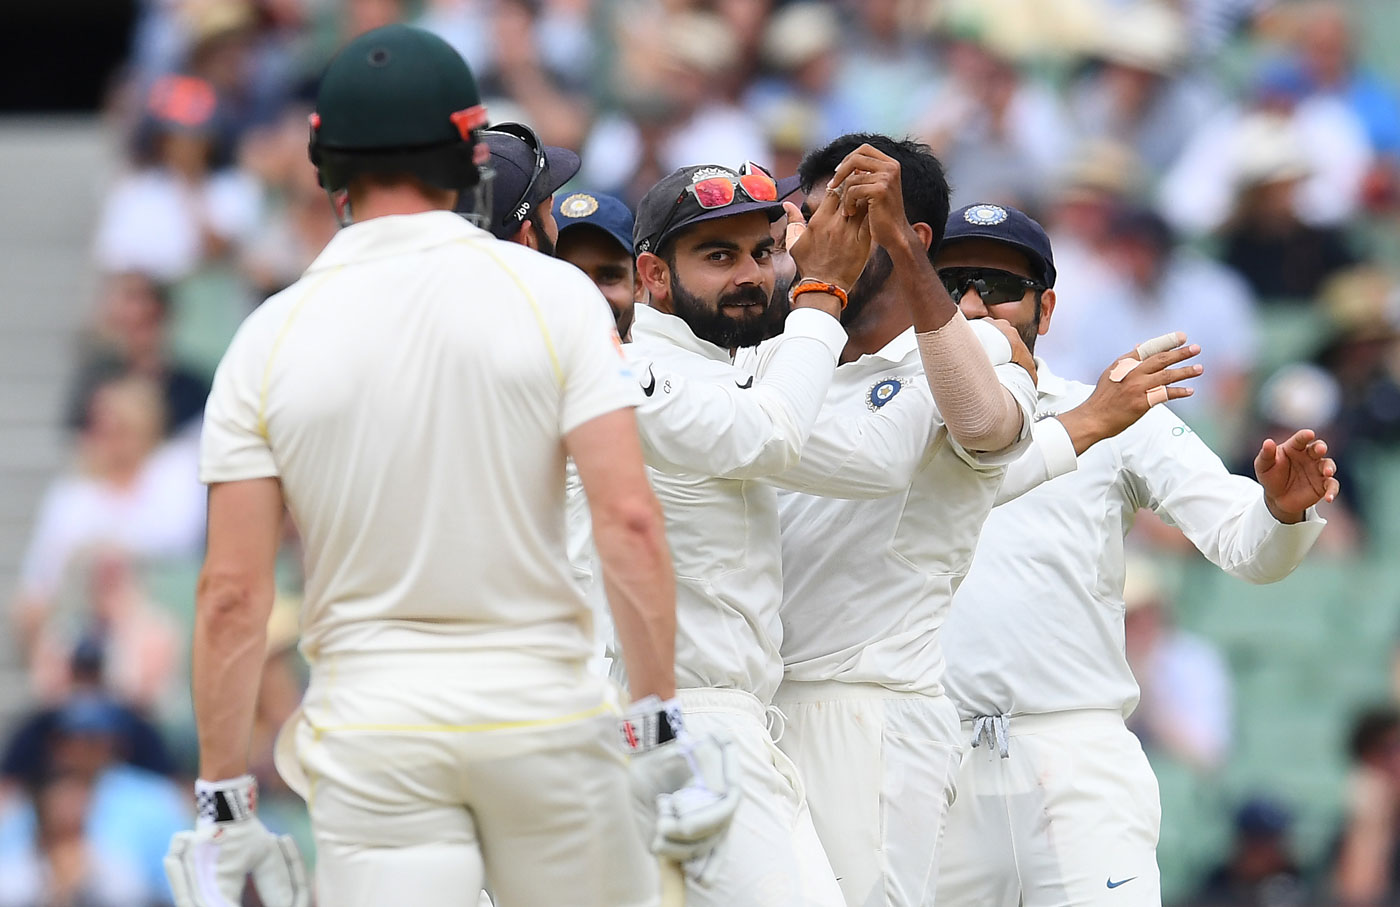 Australia vs India 2018/19: Team India Players React After Thumping Win At MCG 1